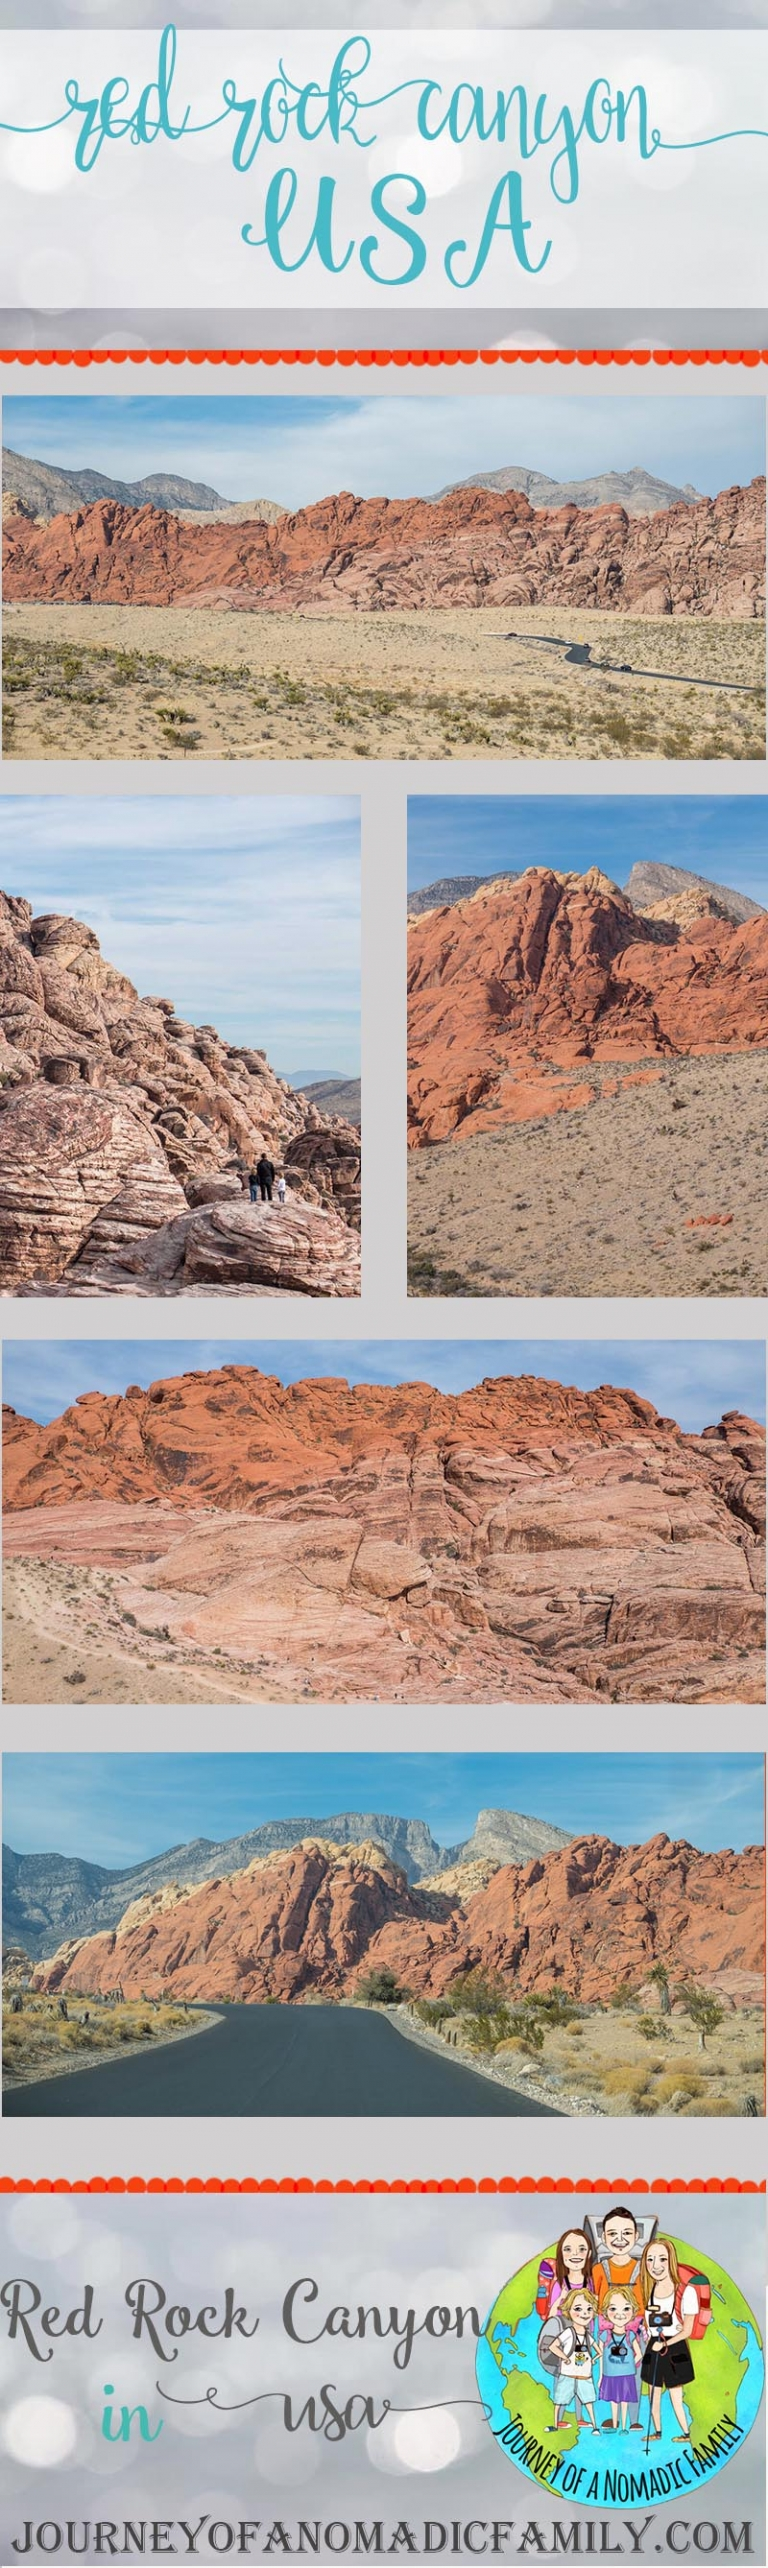 Red rock canyon with kids. 5 reasons to visit